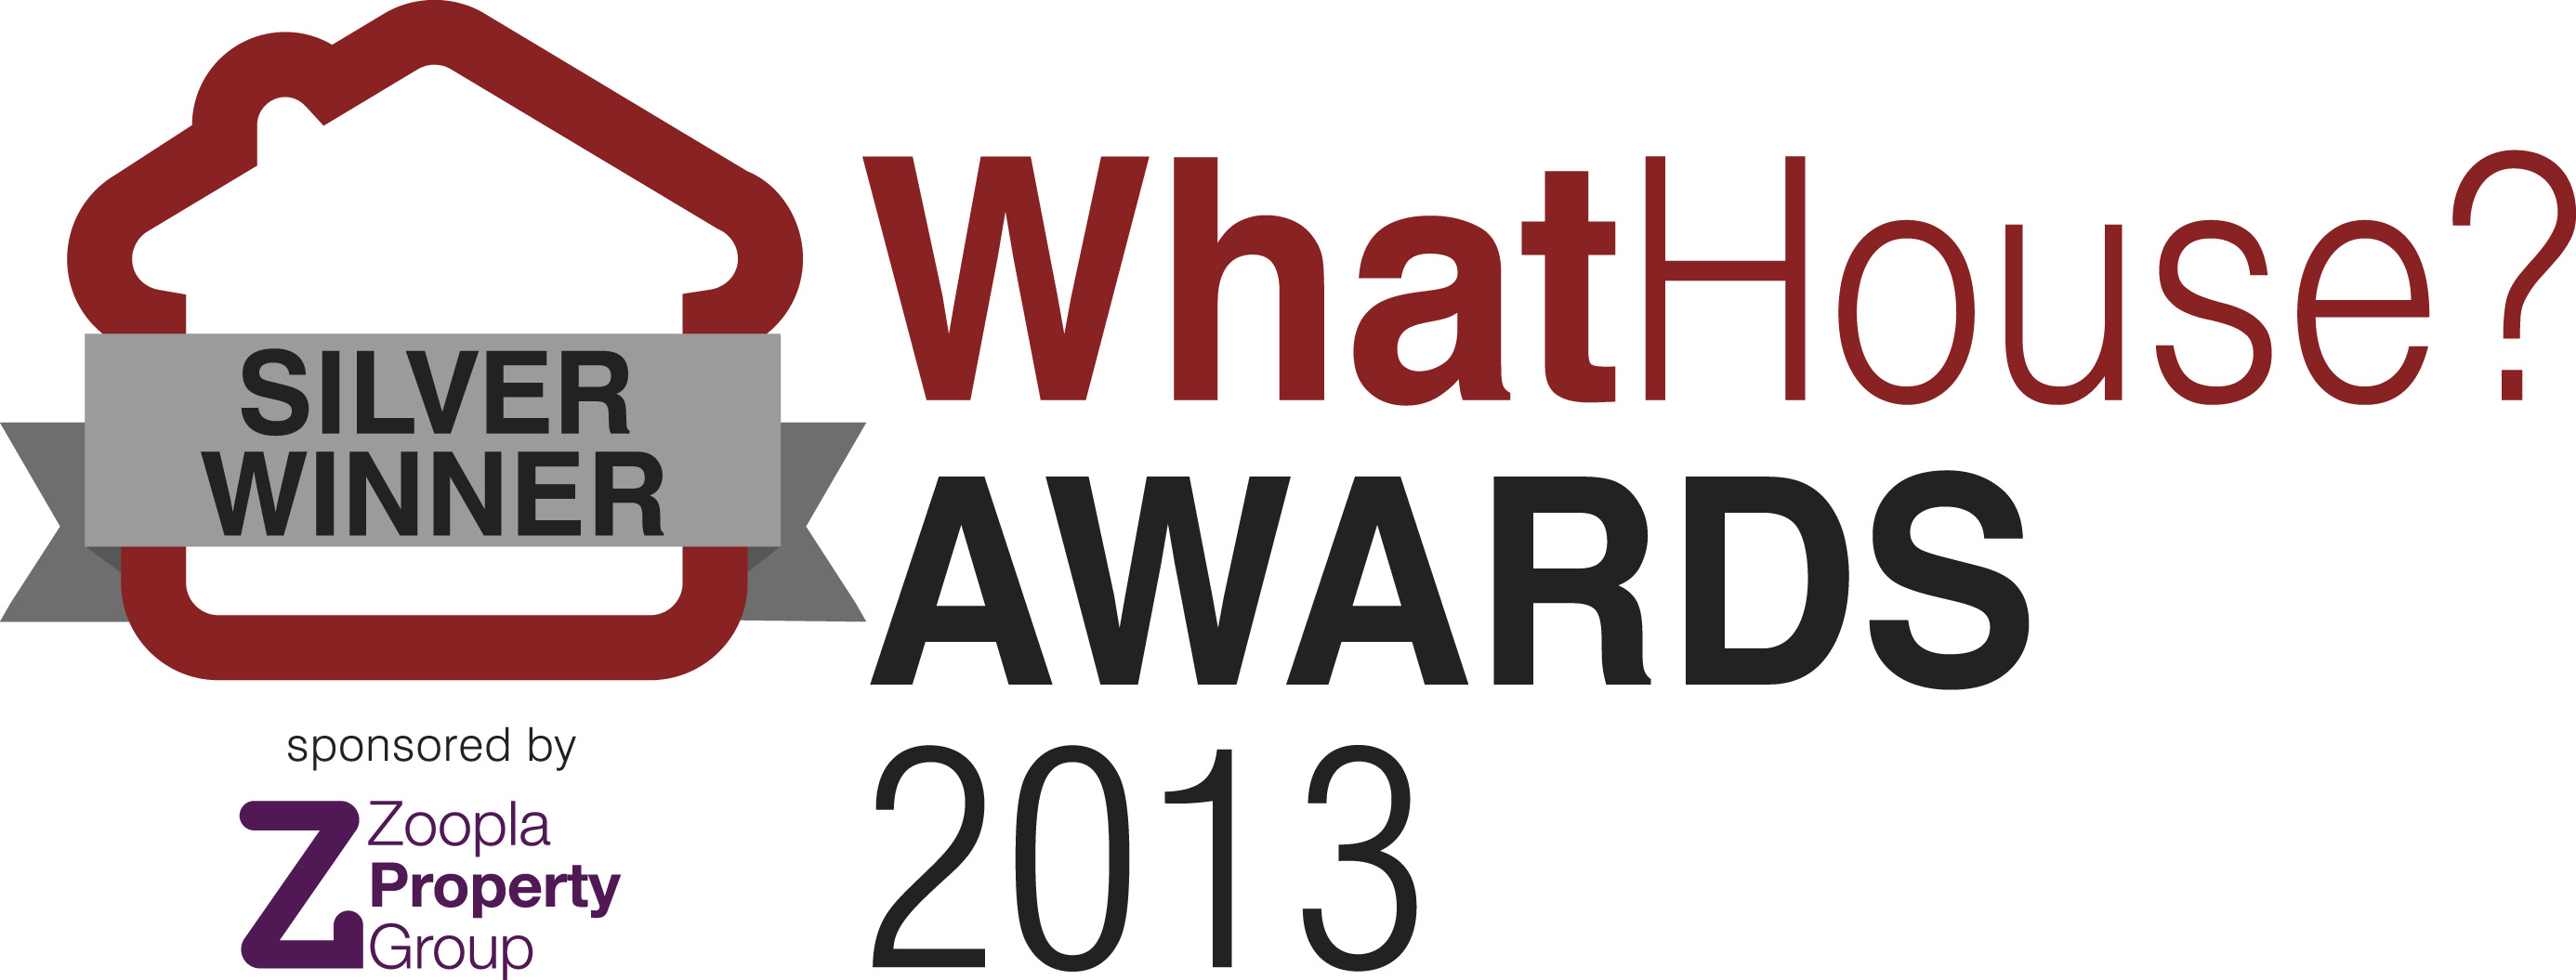 WhatHouse? Awards Winner Silver 2013